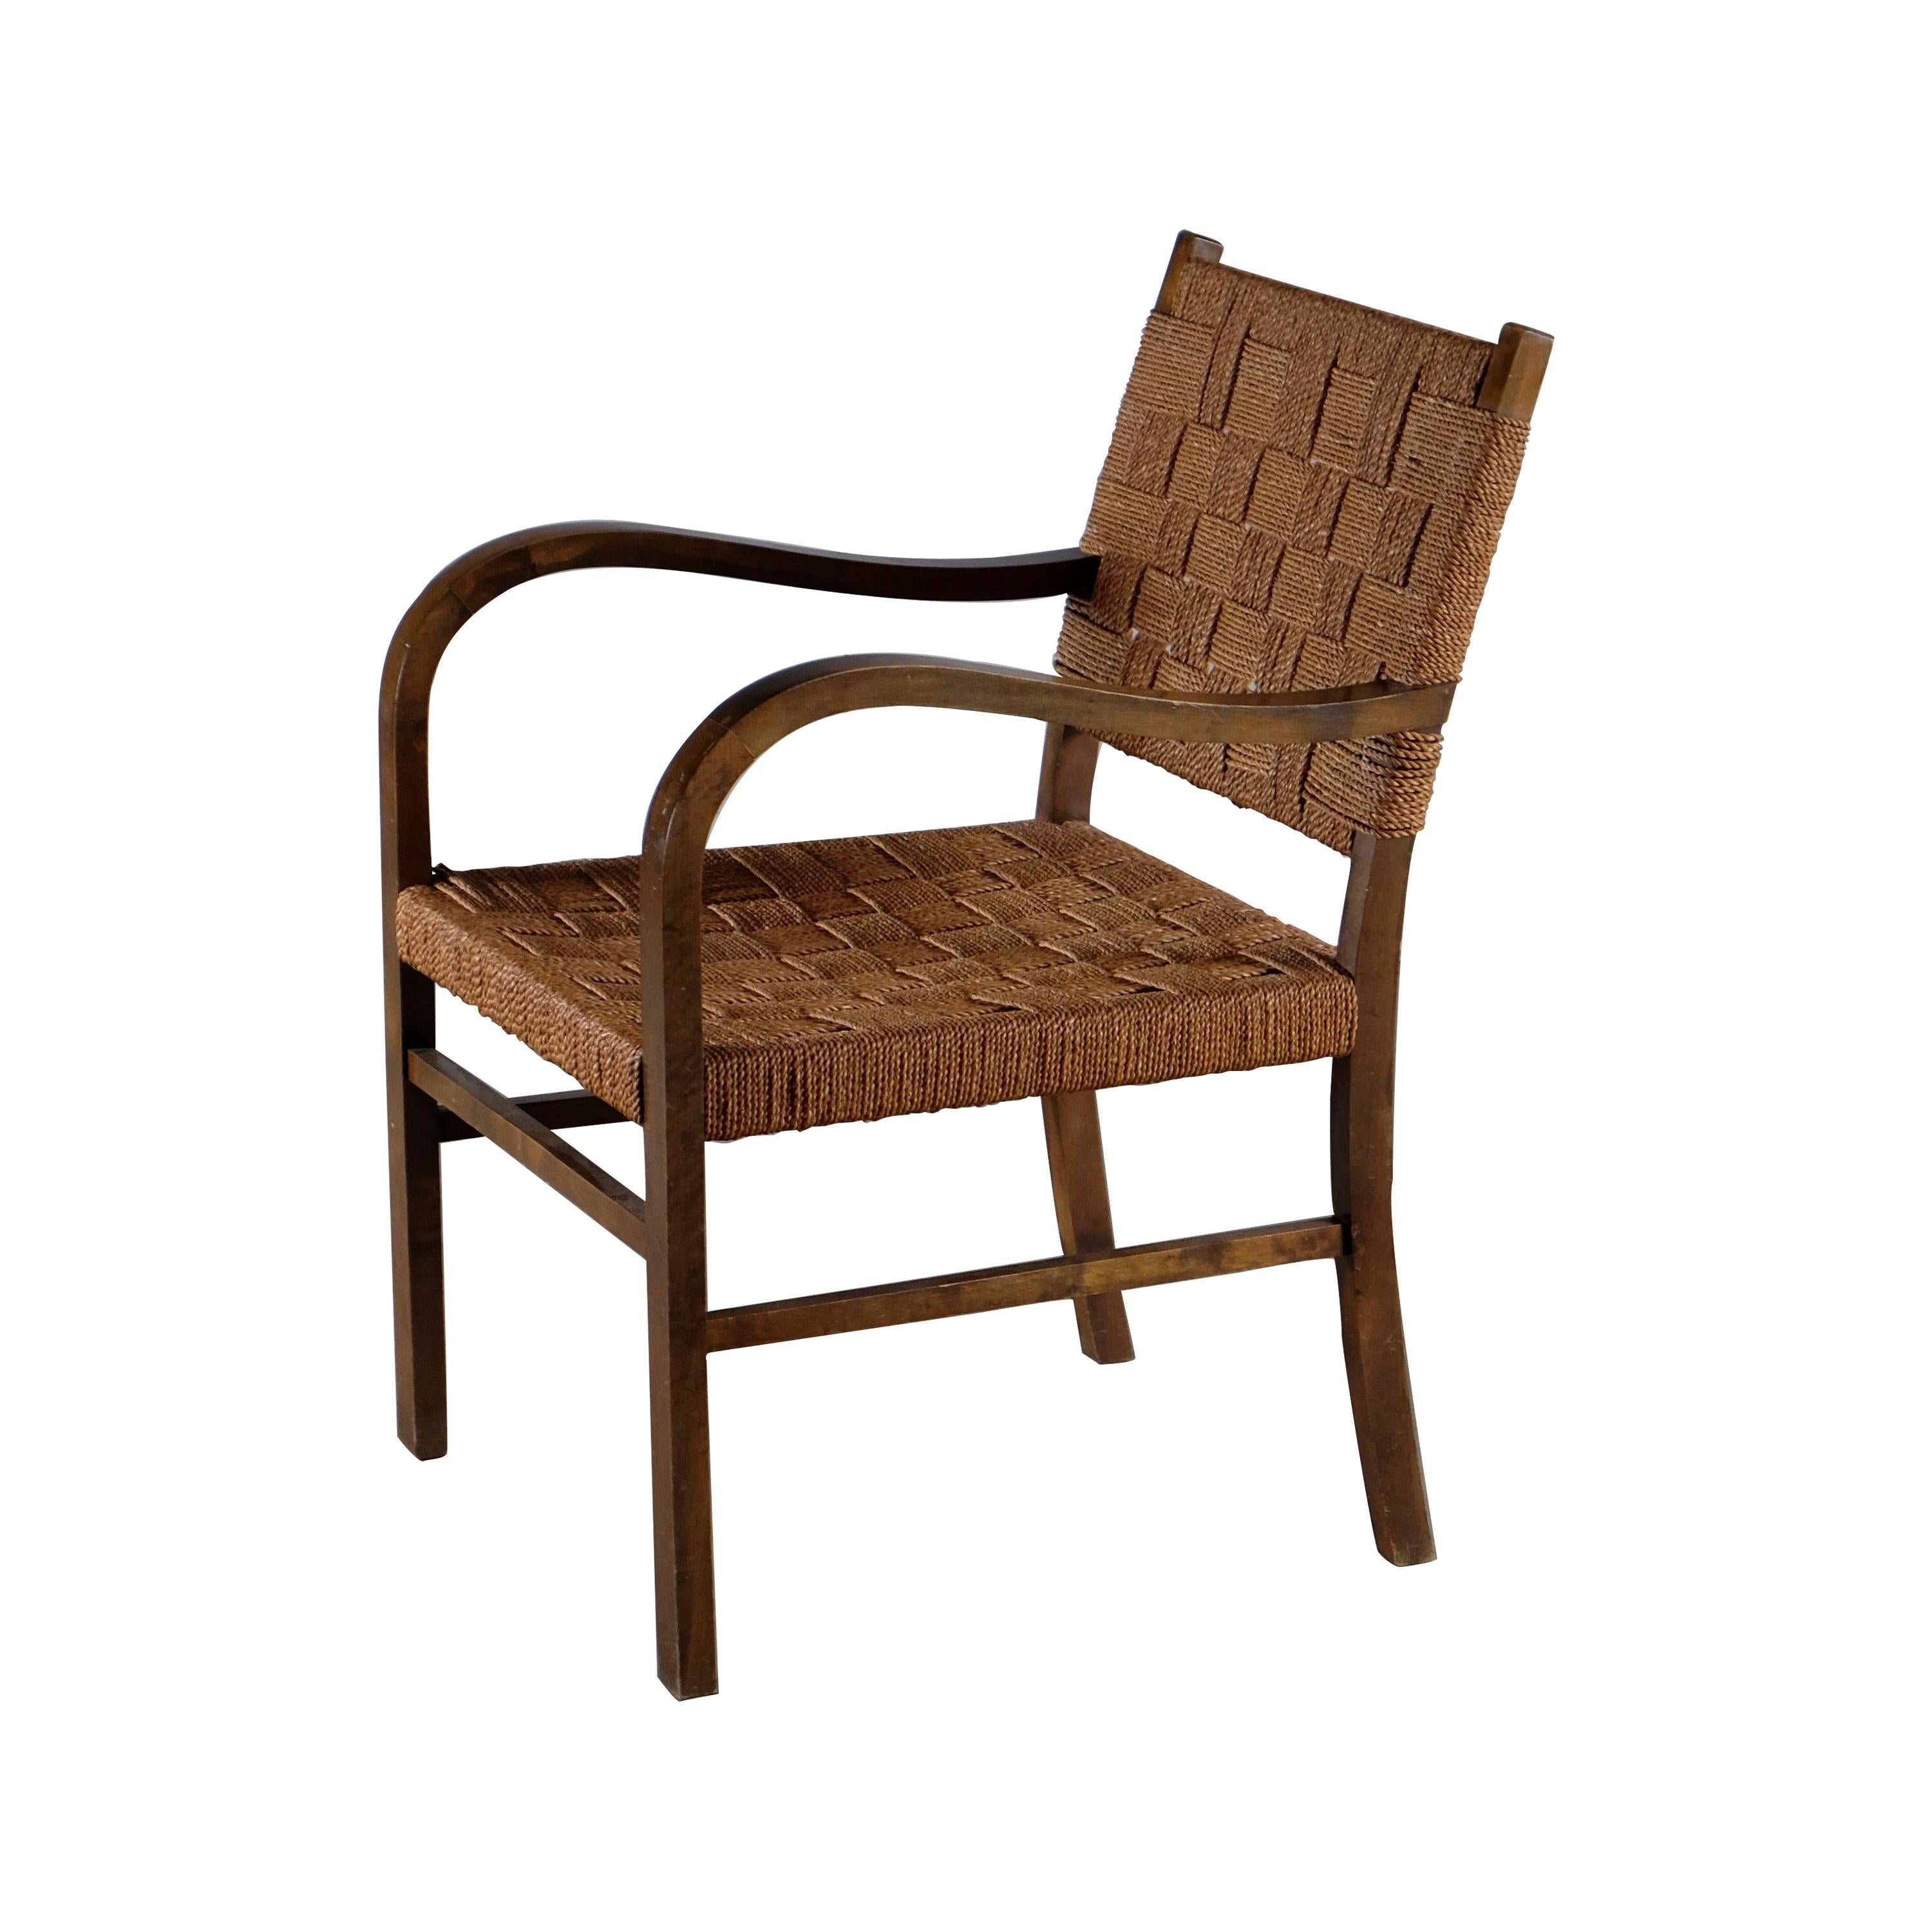 Armchair by Axel Larsson, Sweden, 1940s